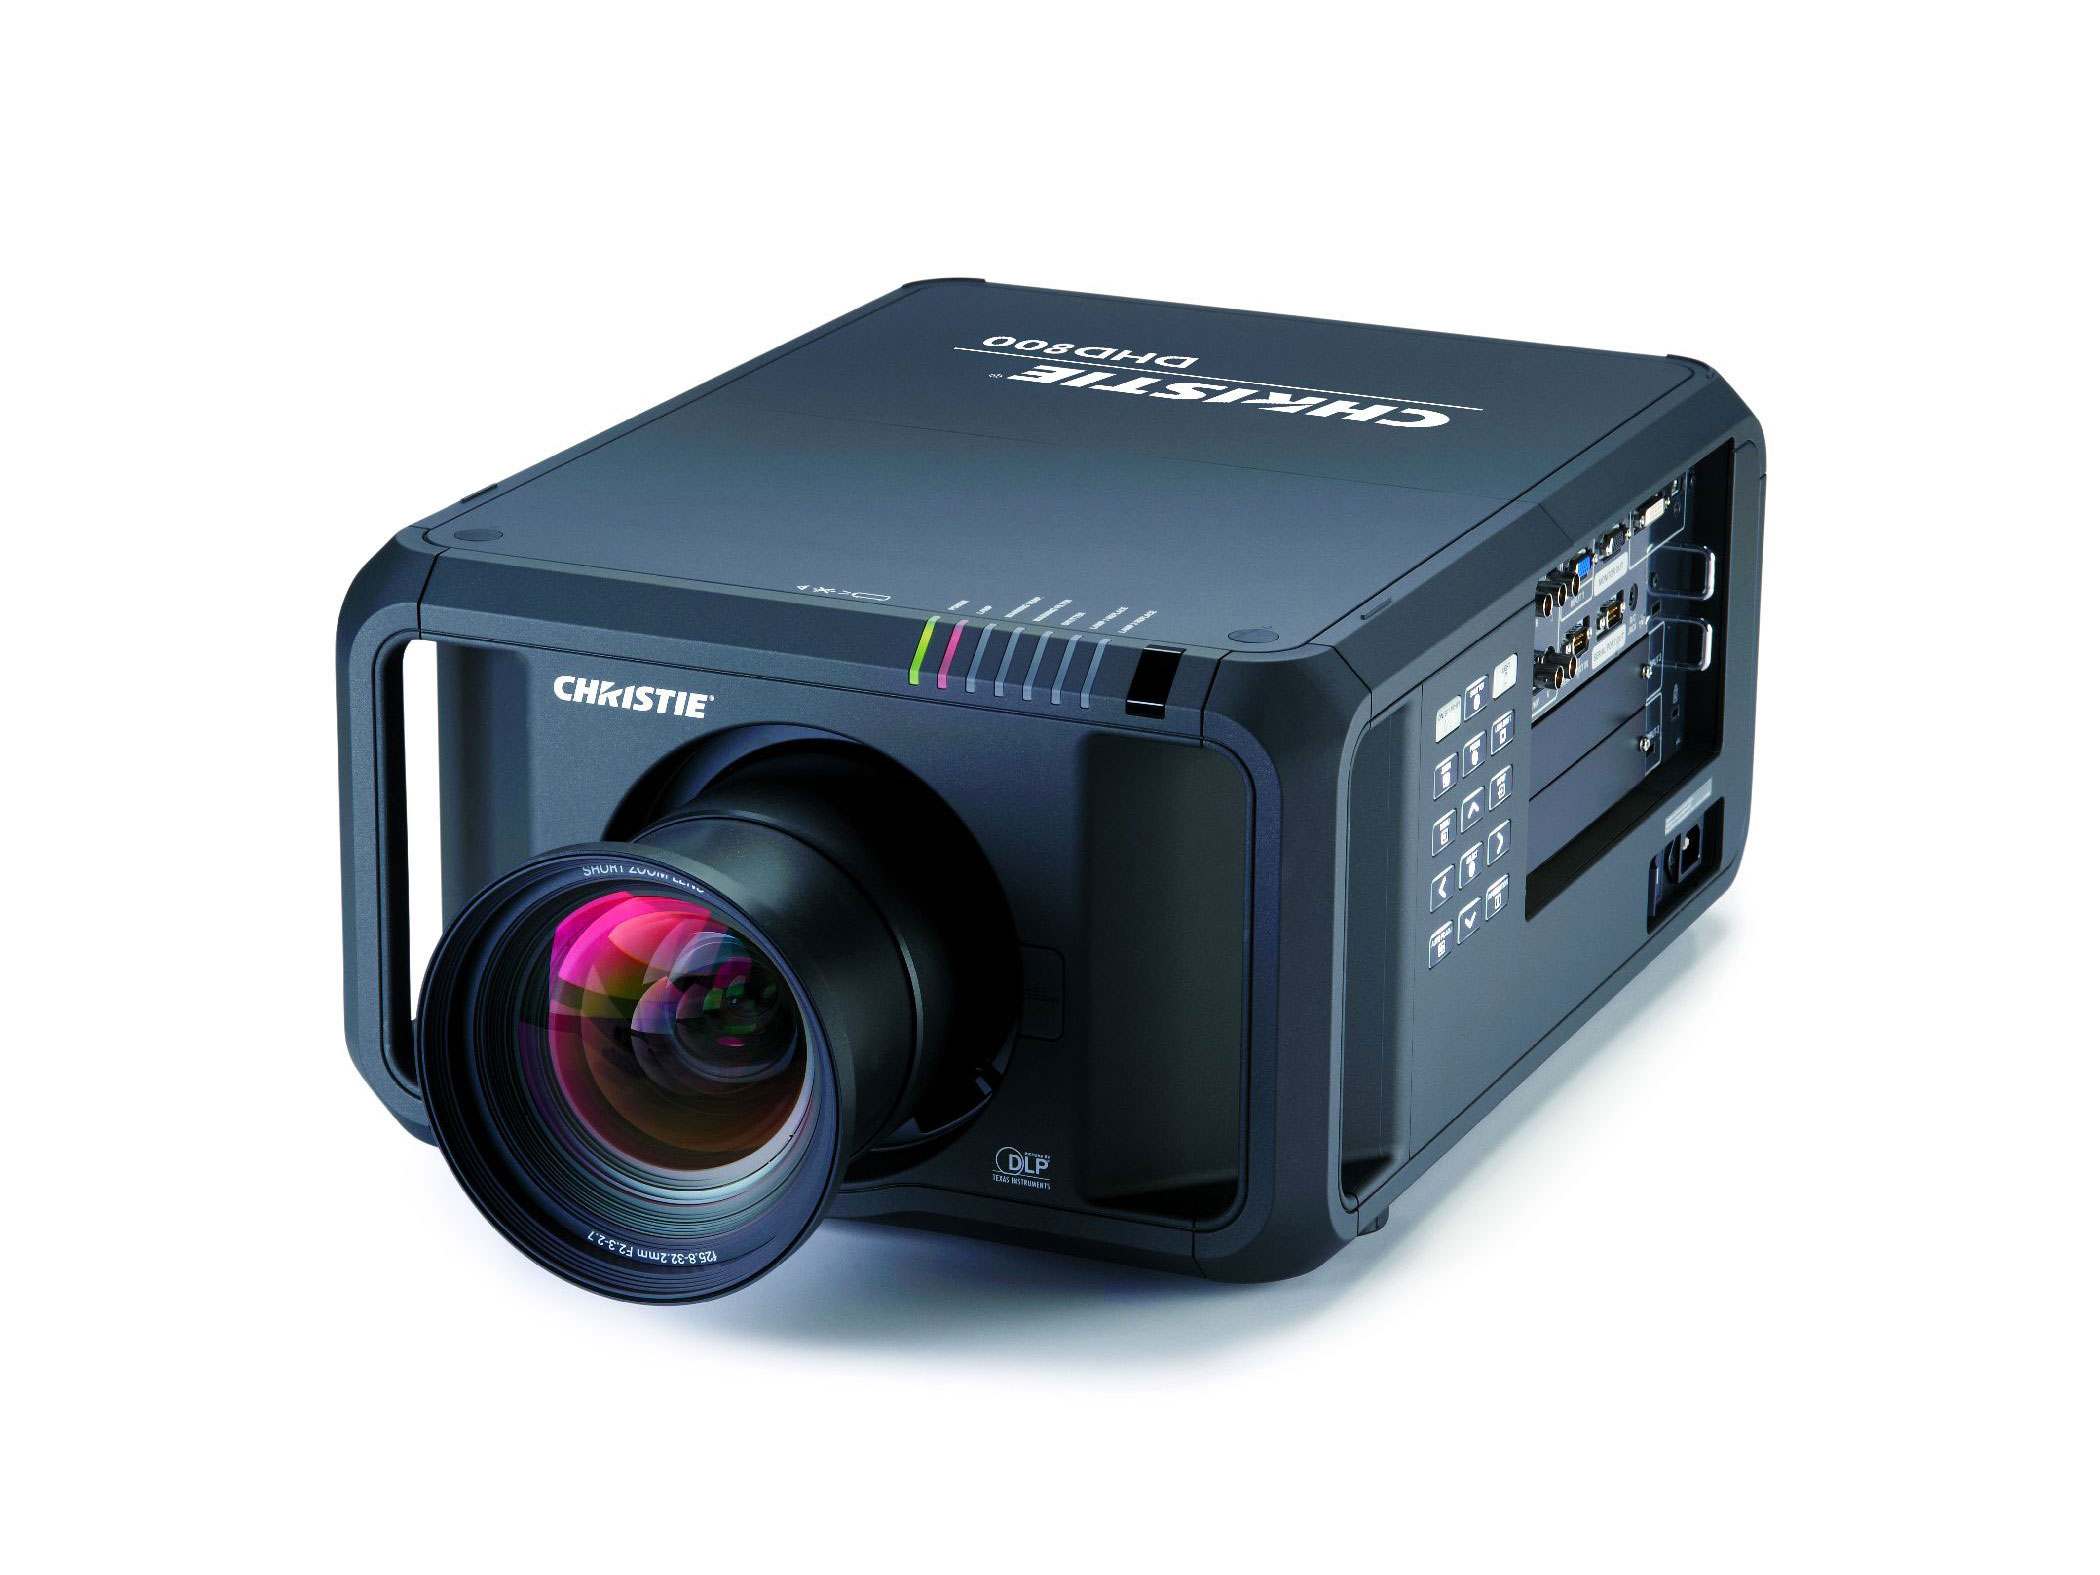 /globalassets/.catalog/products/images/christie-dhd800/gallery/christie-dhd800-digital-projector-image3.jpg